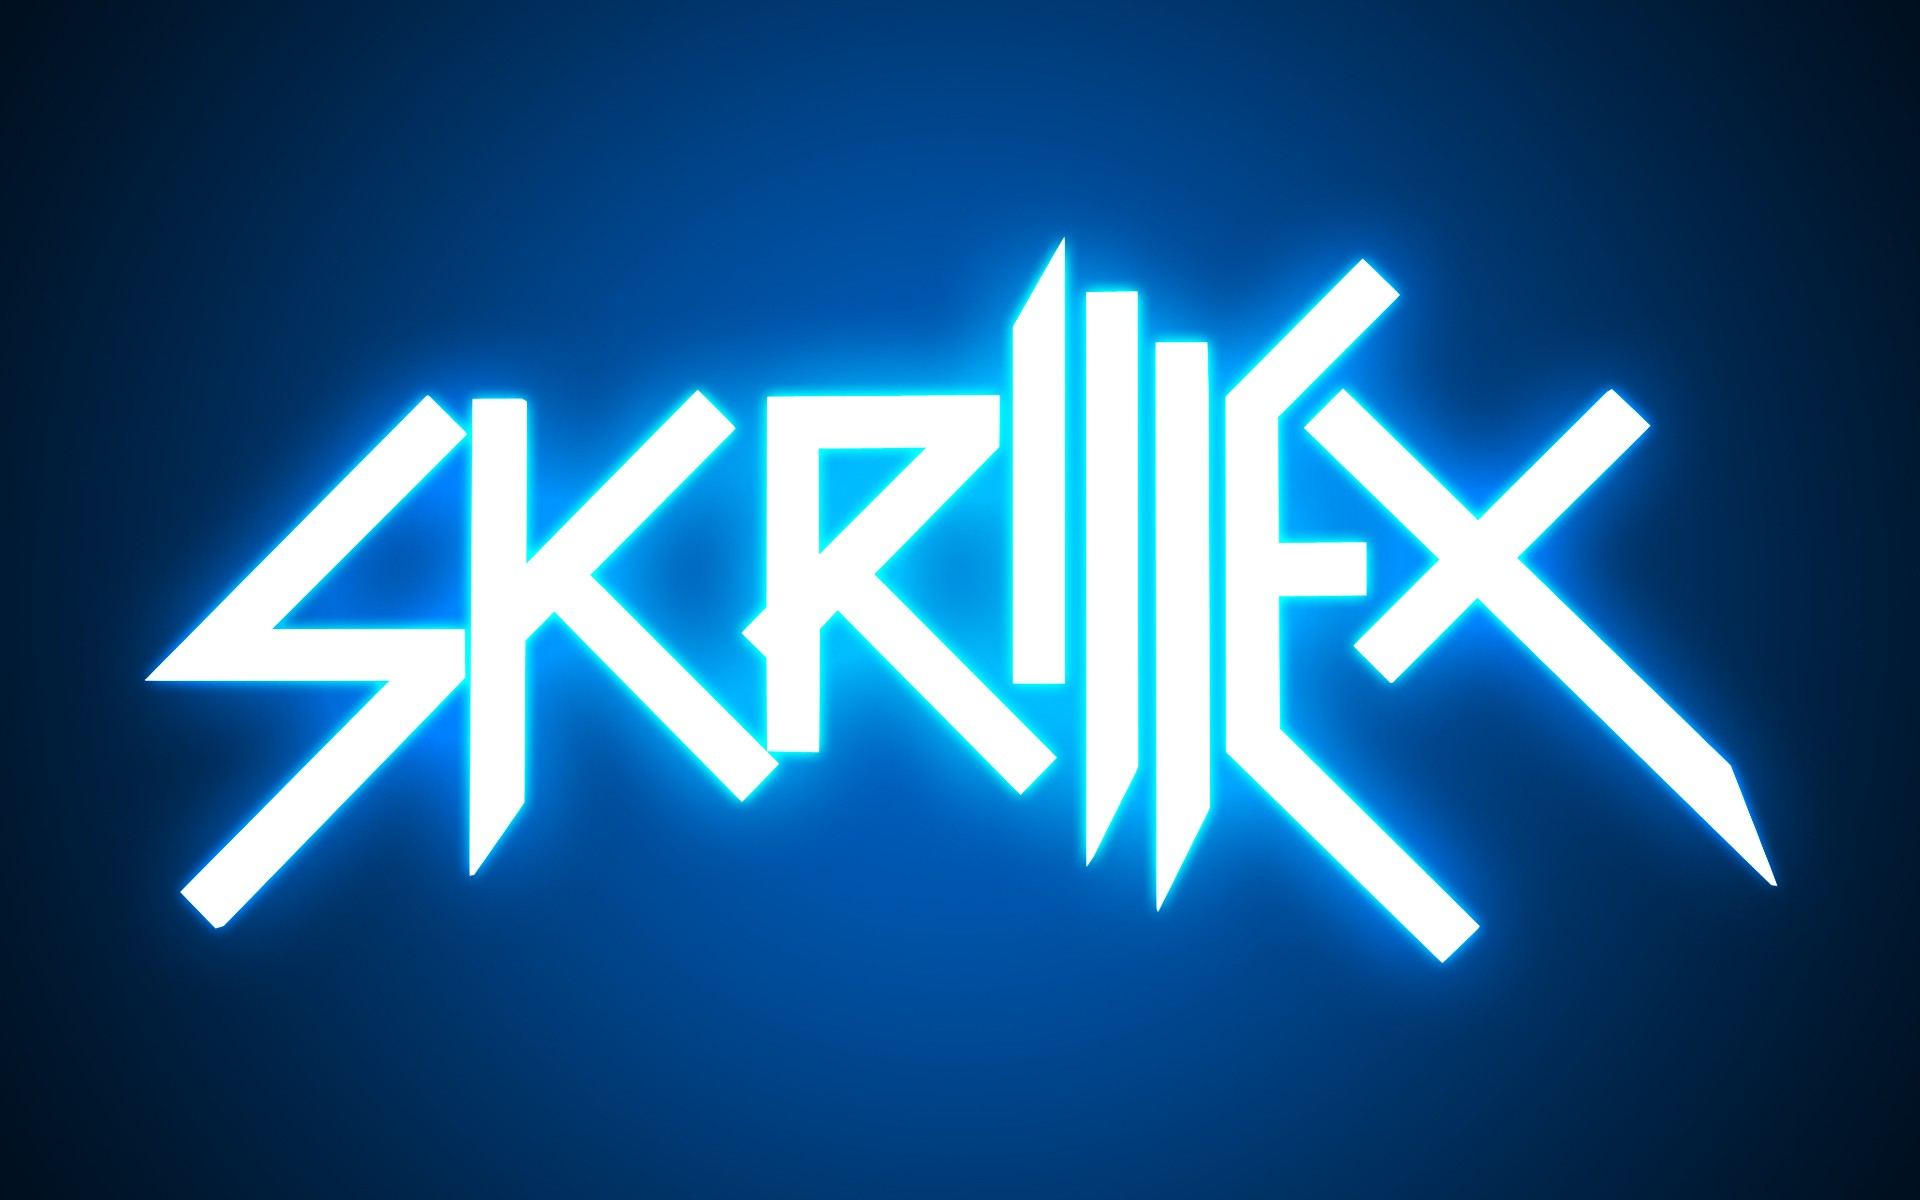 Free Download Skrillex Wallpapers Images Photos Pictures